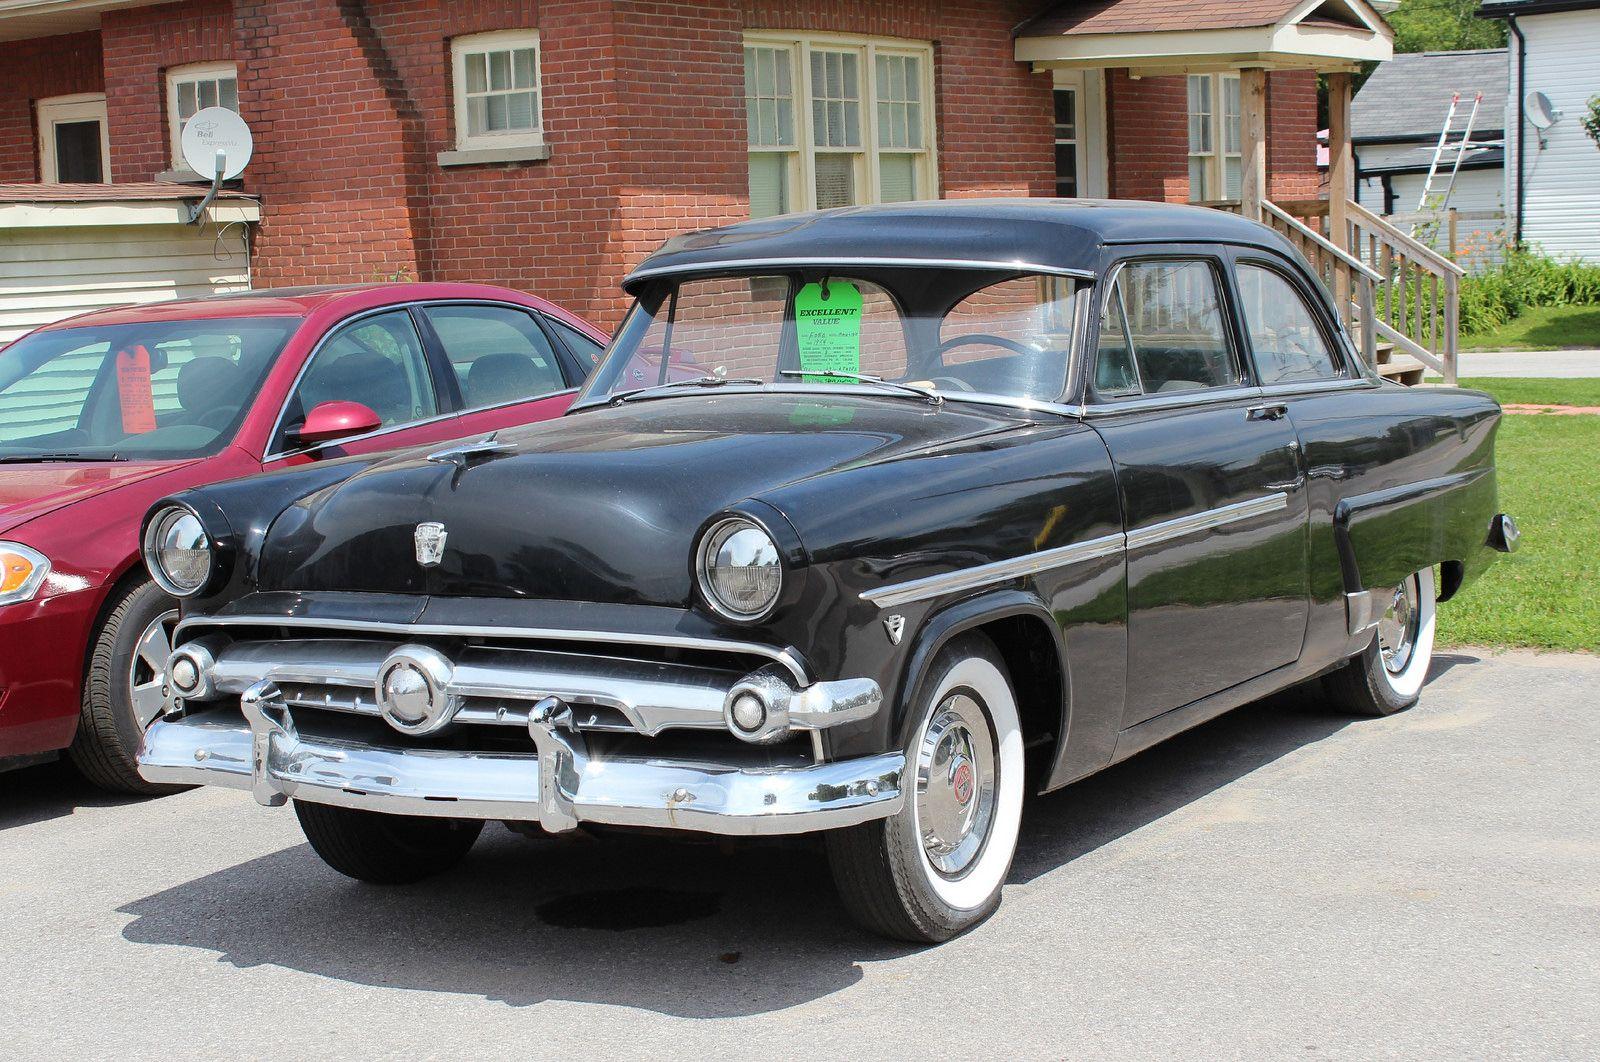 1956 chevrolet belair mjc classic cars pristine - 1954 Ford Mainline Had One Maroon 4 Door While In California Also A Green 2 Door In Indiana I Had This Car With 4 Doors Ford 1952 53 54 Pinterest